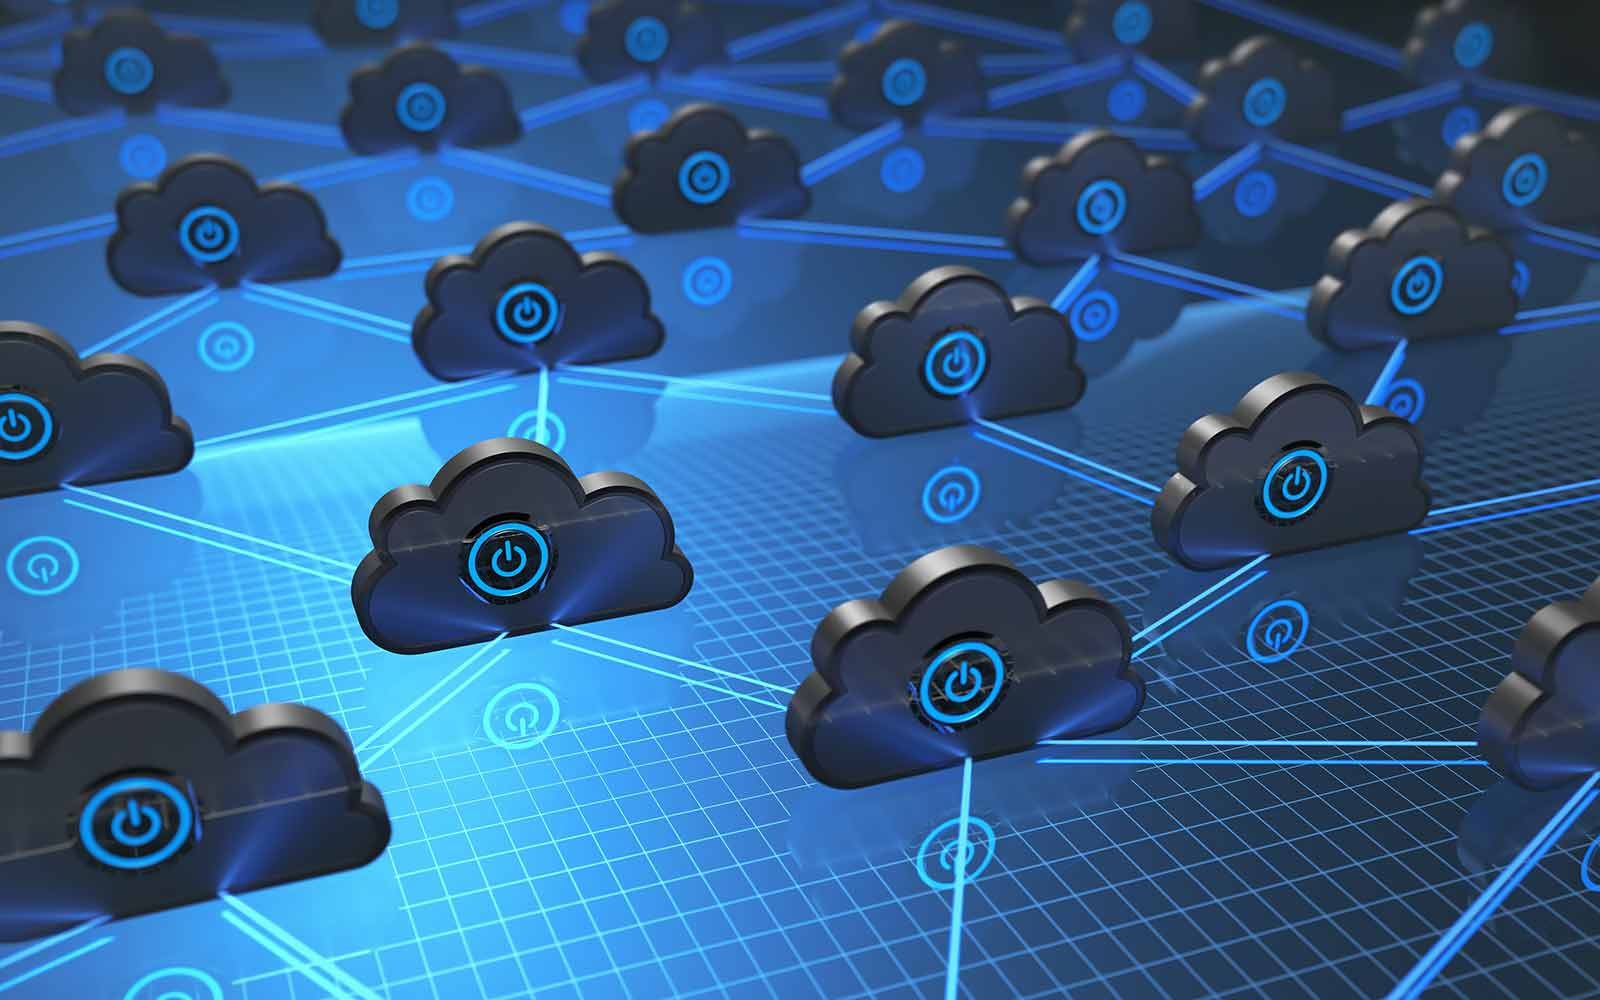 cloud software icons working together